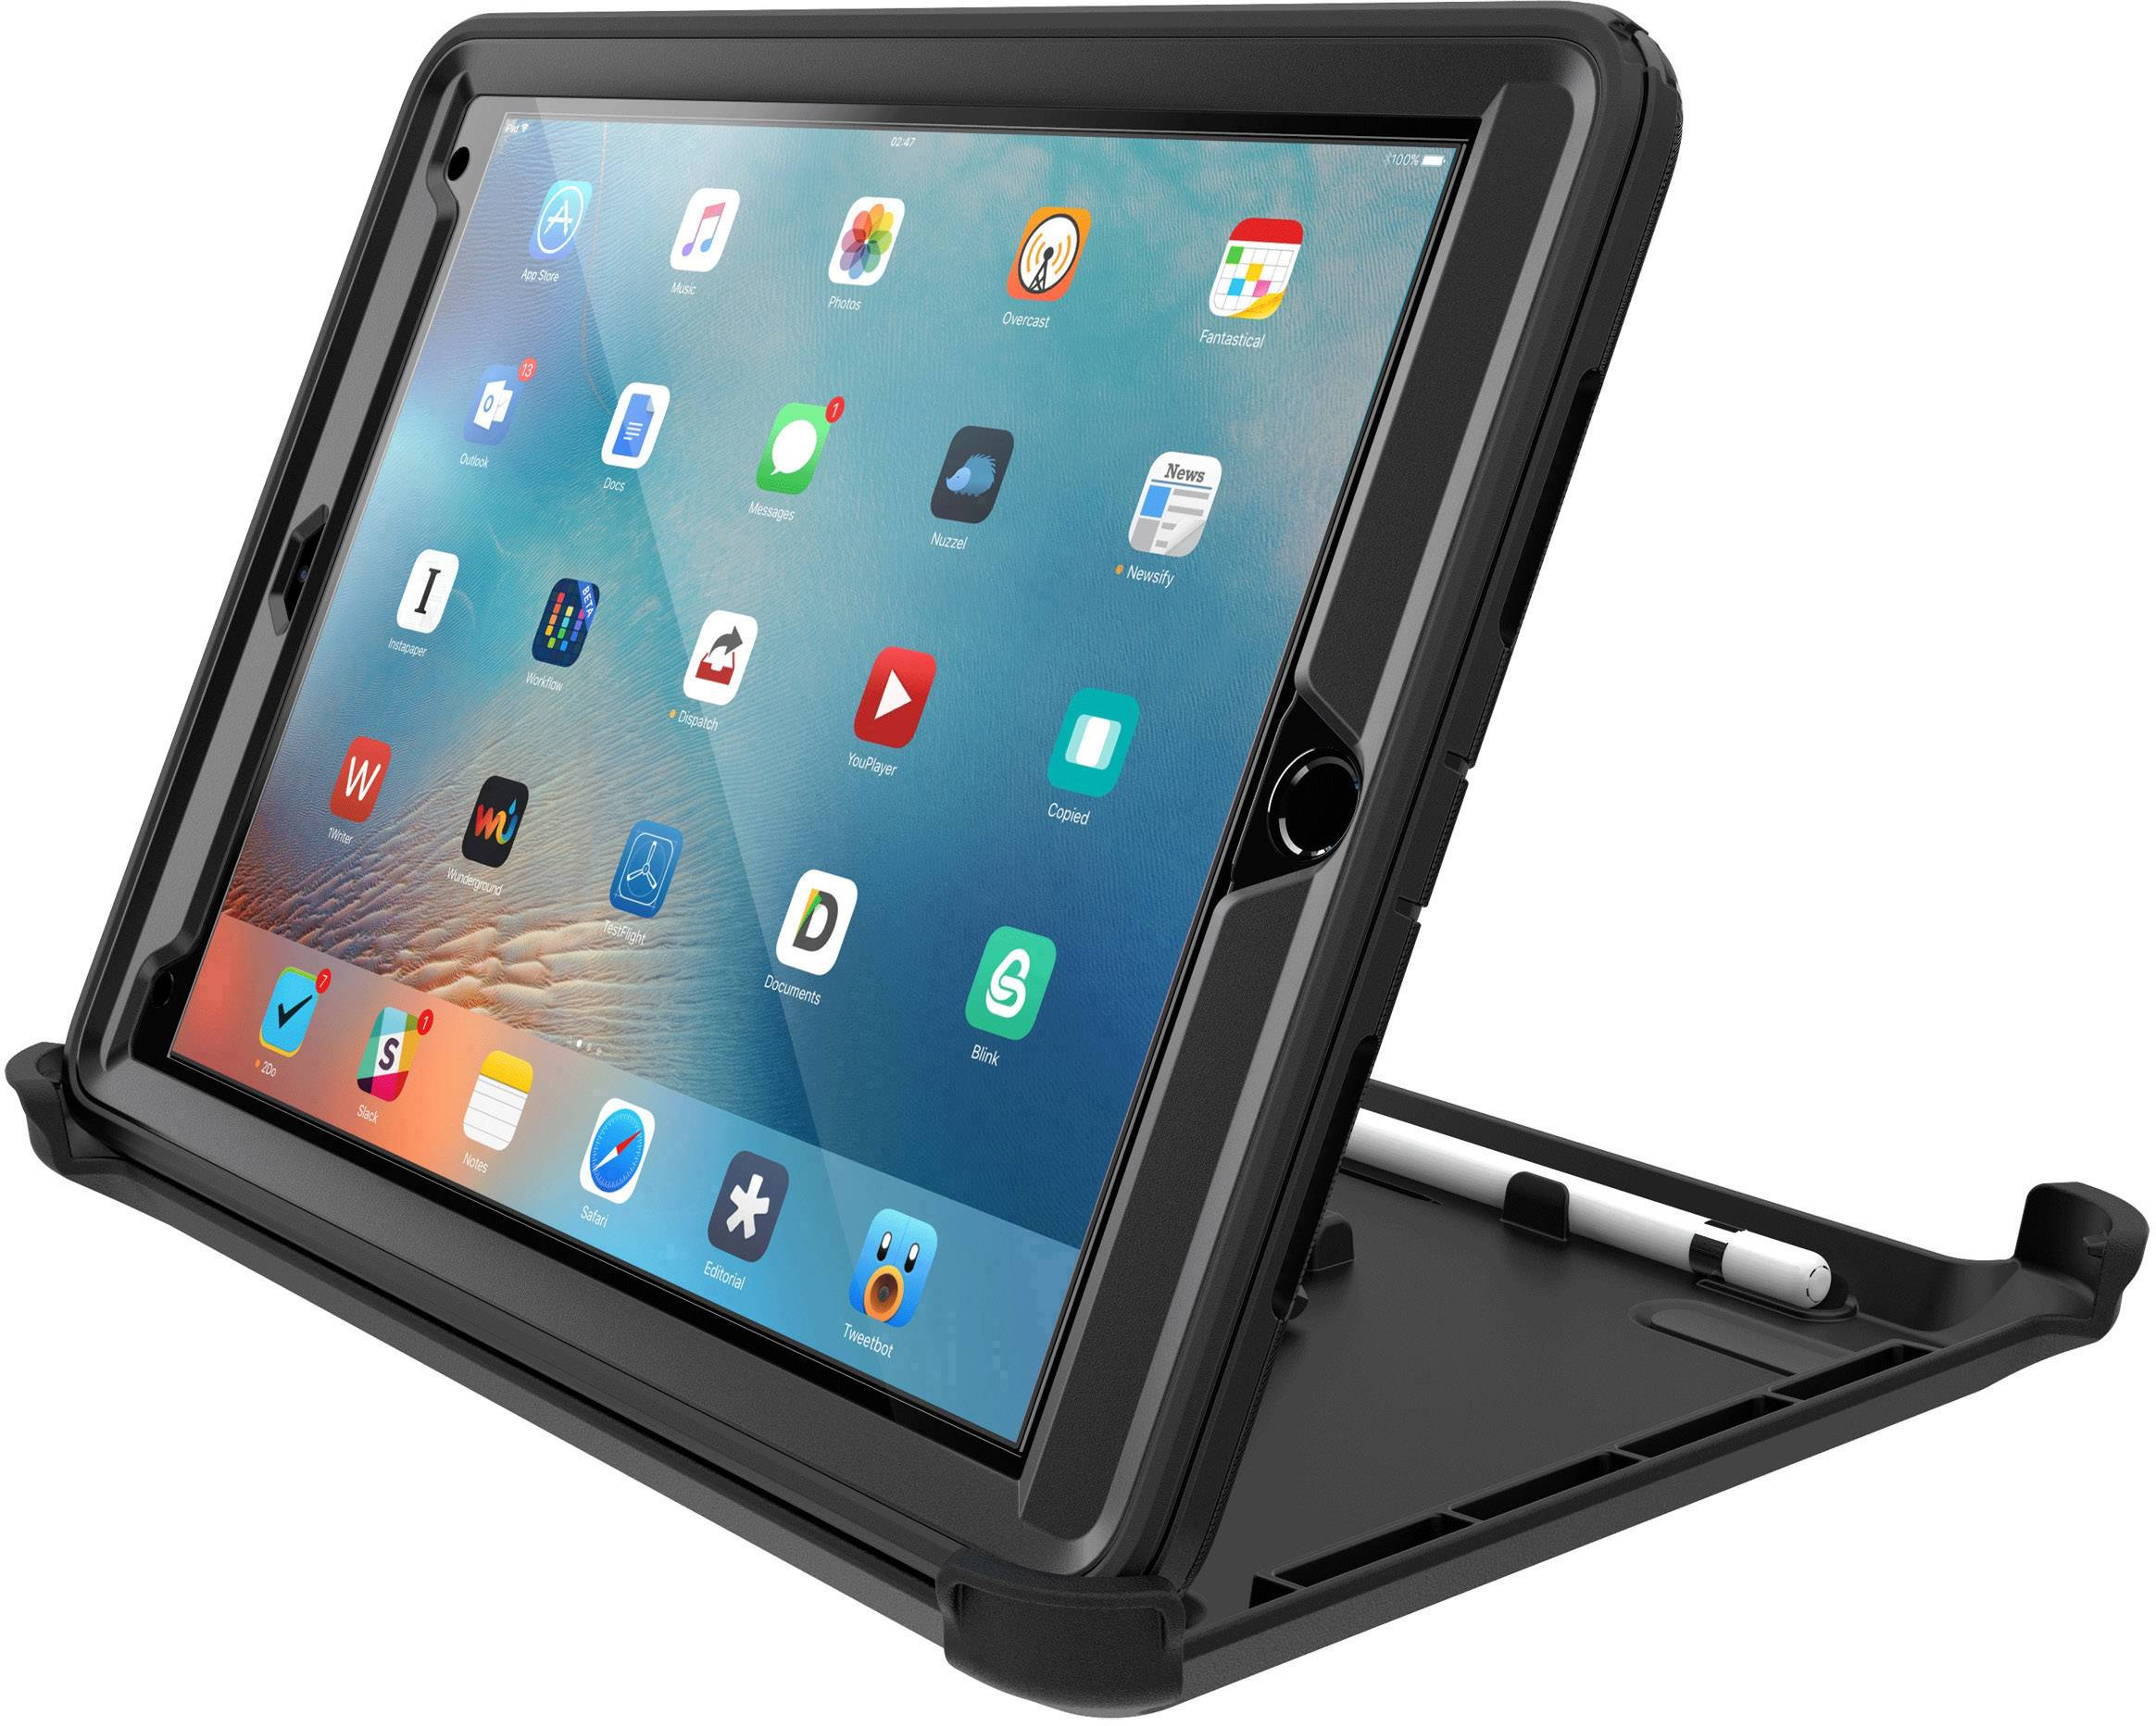 reputable site 7ced1 acb58 Otterbox iPad Cover / hoes Outdoor case Geschikt voor Apple: iPad ...